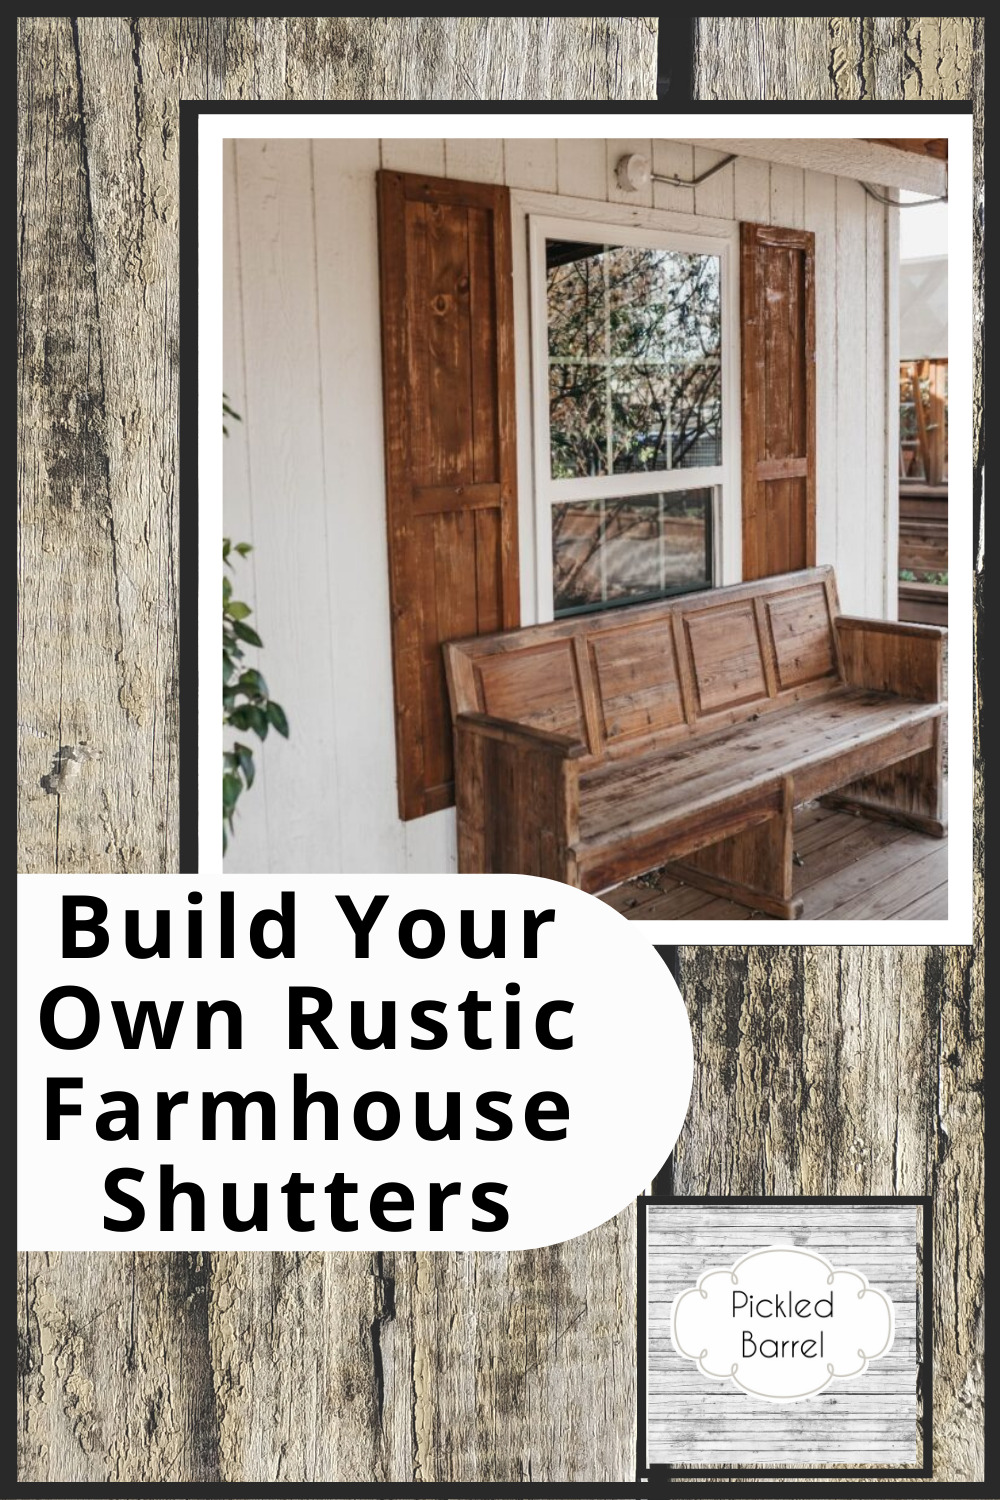 Pickledbarrel.com is the best source for farmhouse style, rustic decor, and simple upcycling ideas! Add some DIY charm to your home! Learn how you can make your own rustic exterior shutters today!